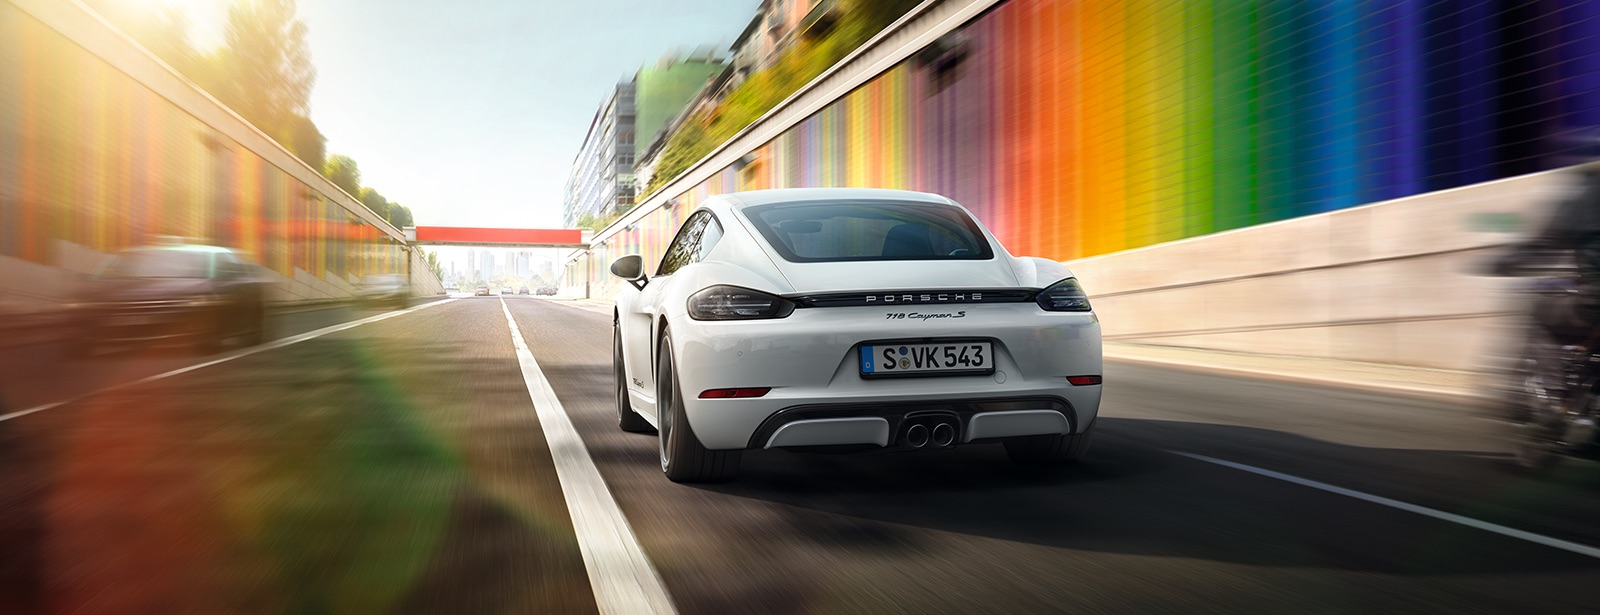 Porsche - Be Your Style with 718